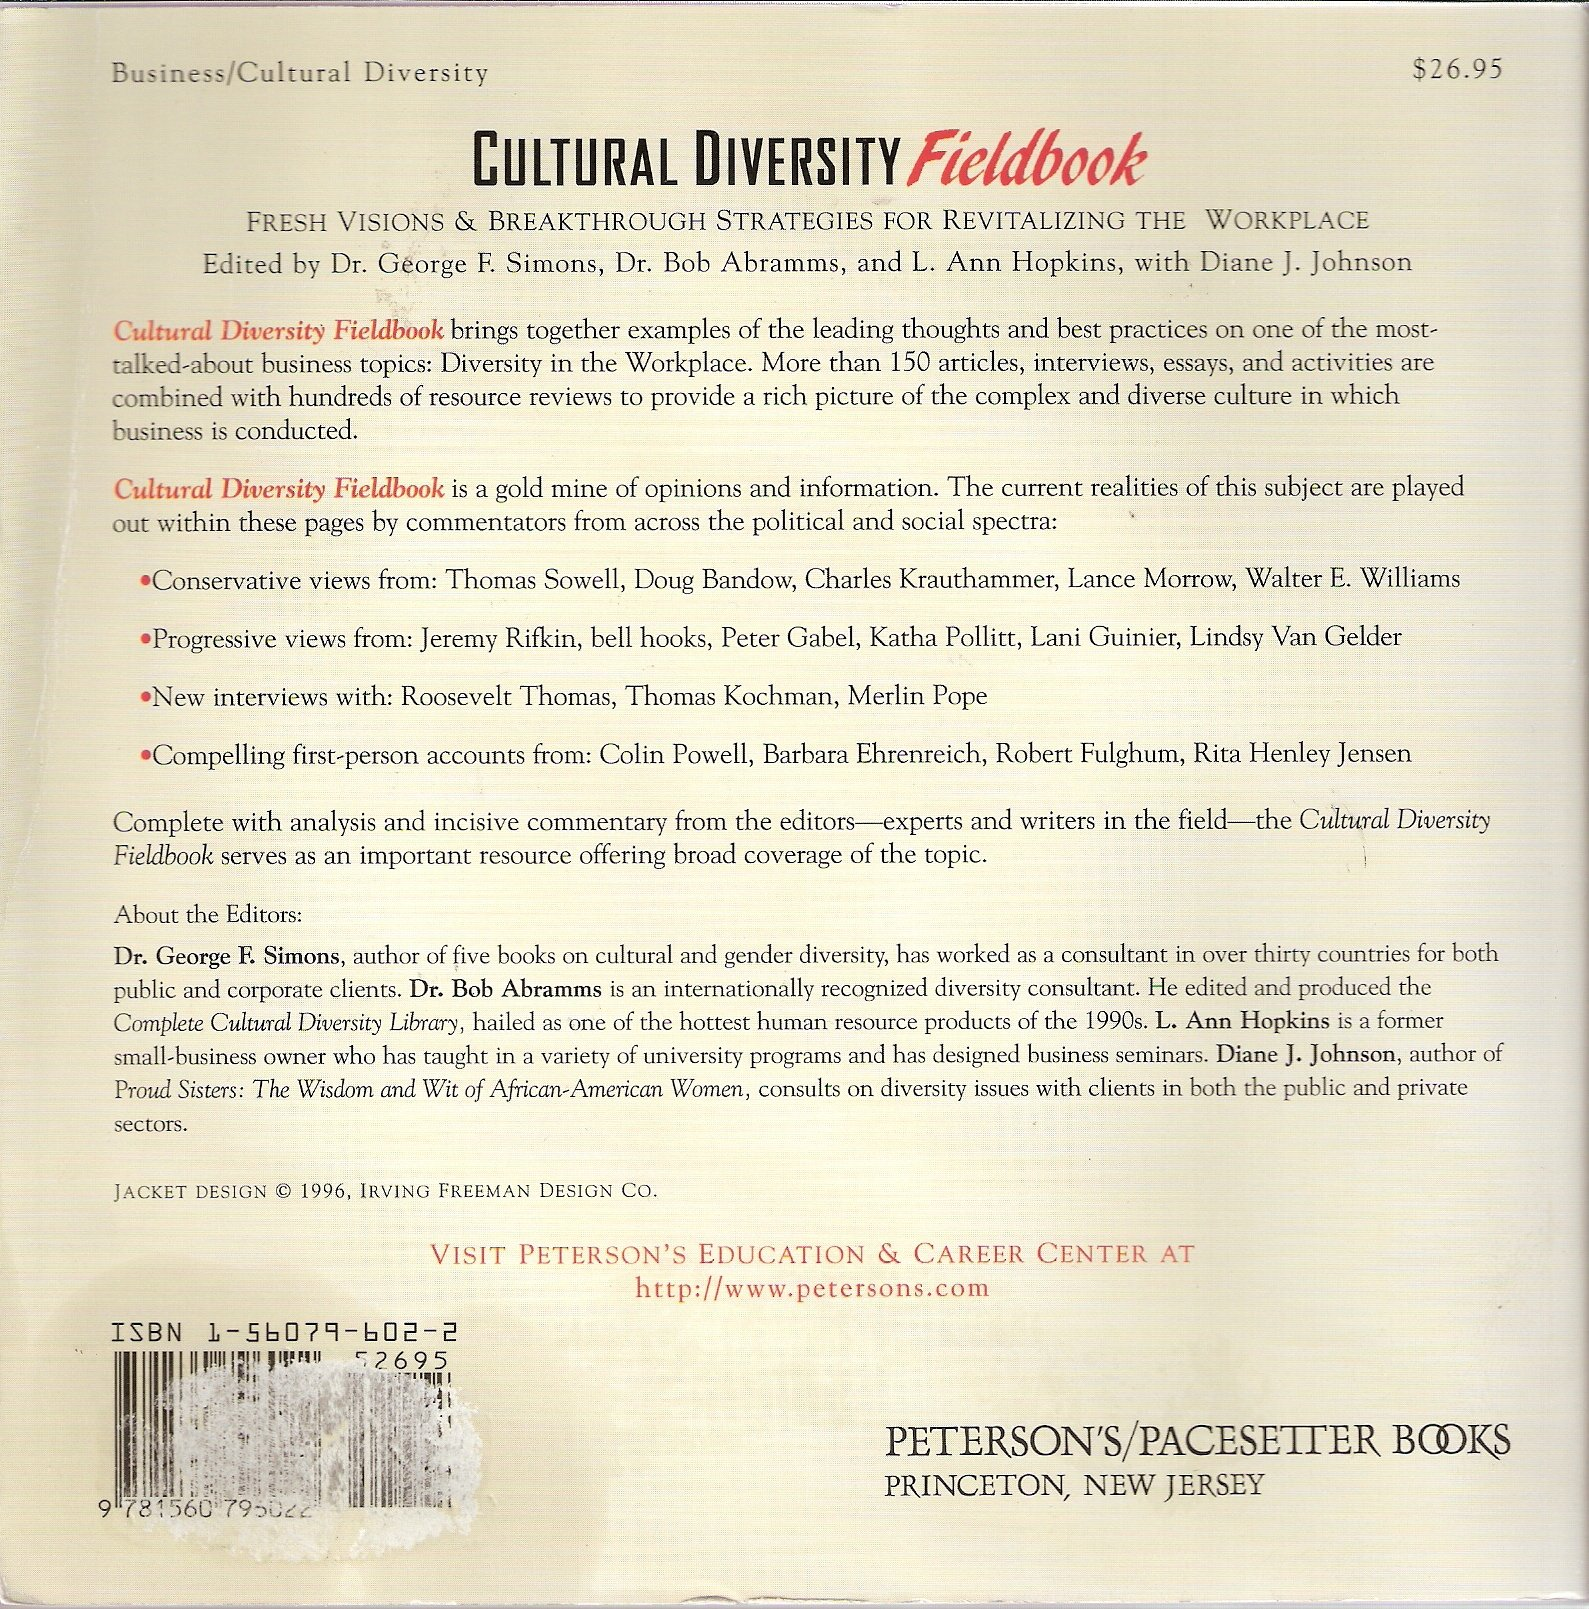 How To Write A Proposal Essay Outline Cultural Diversity Fieldbook Fresh Visions  Breakthrough Strategies For  Revitalizing The Workplace Pacesetter Books Bob Abramms L Ann Hopkins   My English Essay also Locavore Synthesis Essay Cultural Diversity Fieldbook Fresh Visions  Breakthrough  Essays In Science